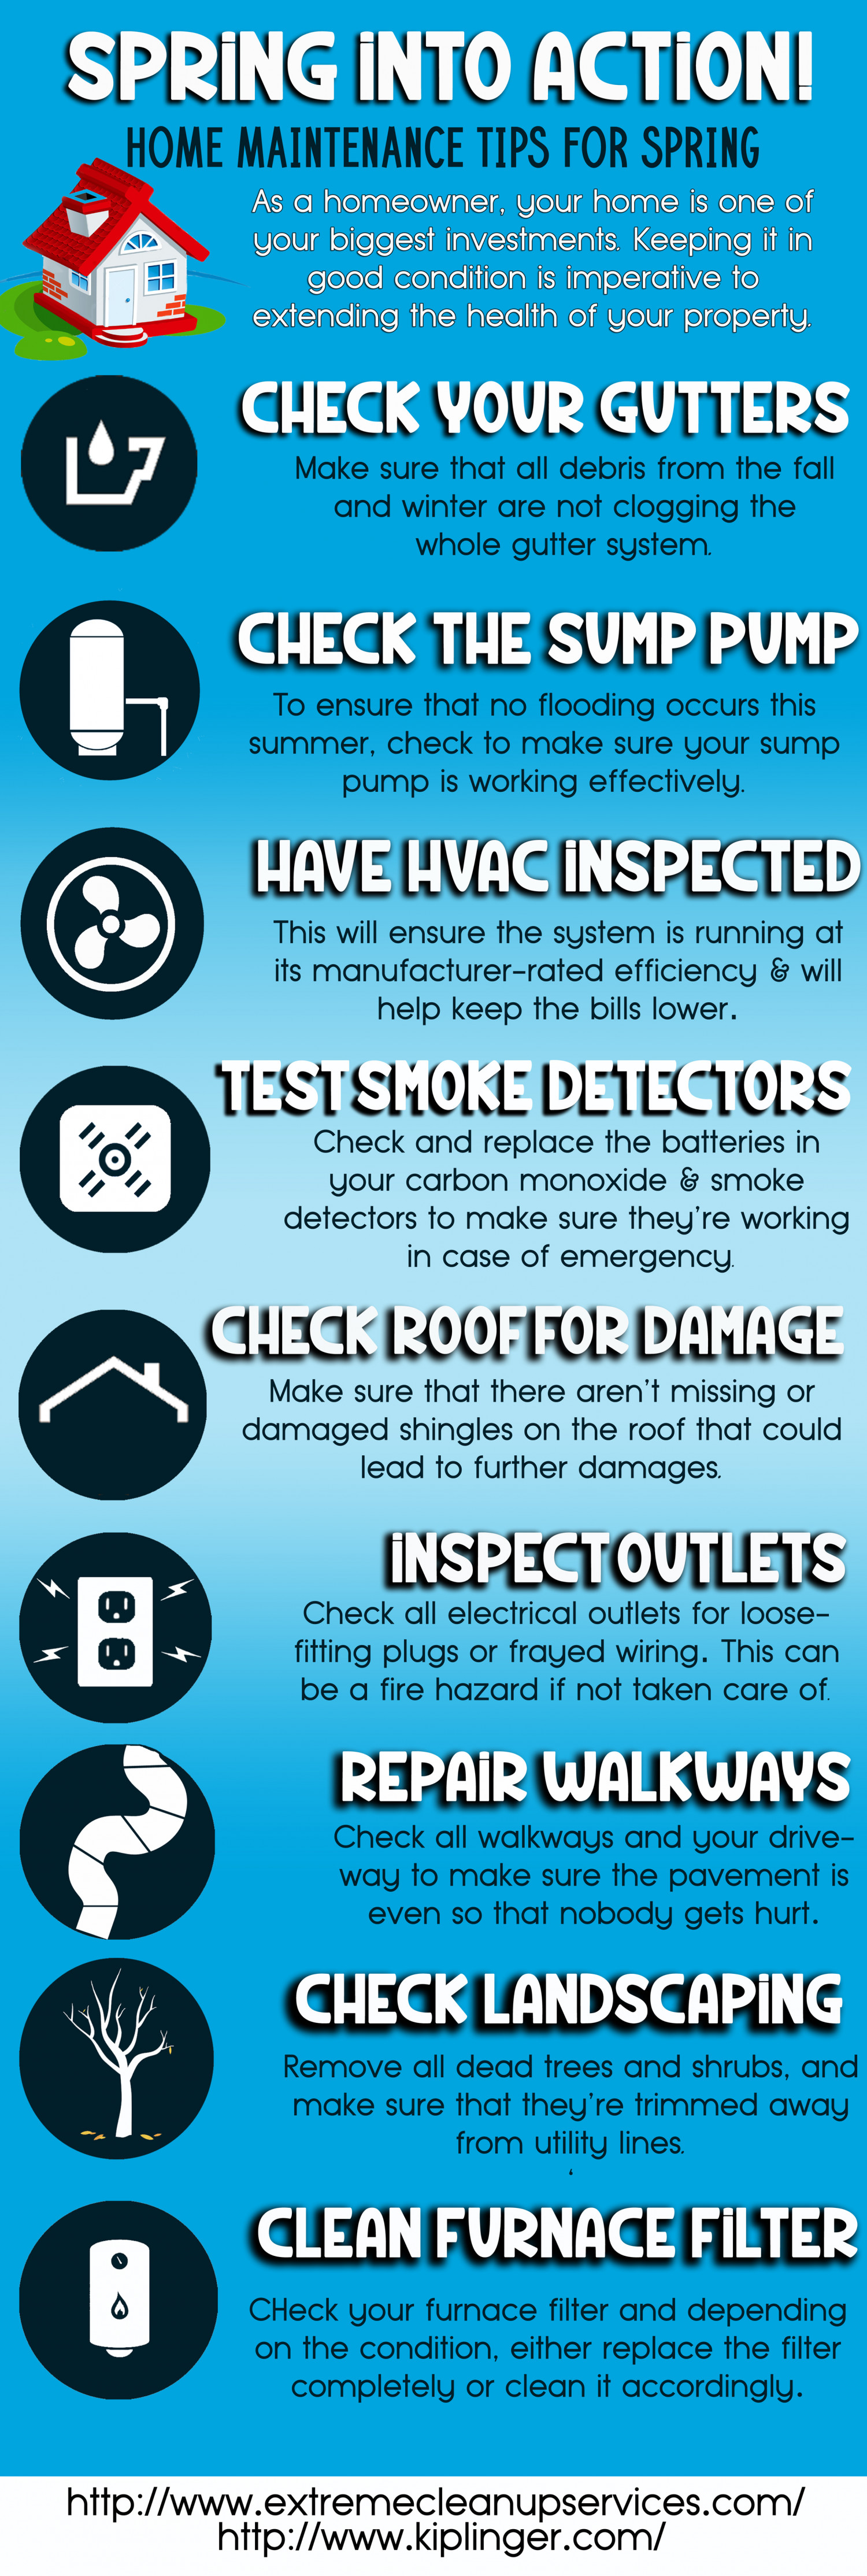 Spring Into Action! Home Maintenance Tips For Spring Infographic